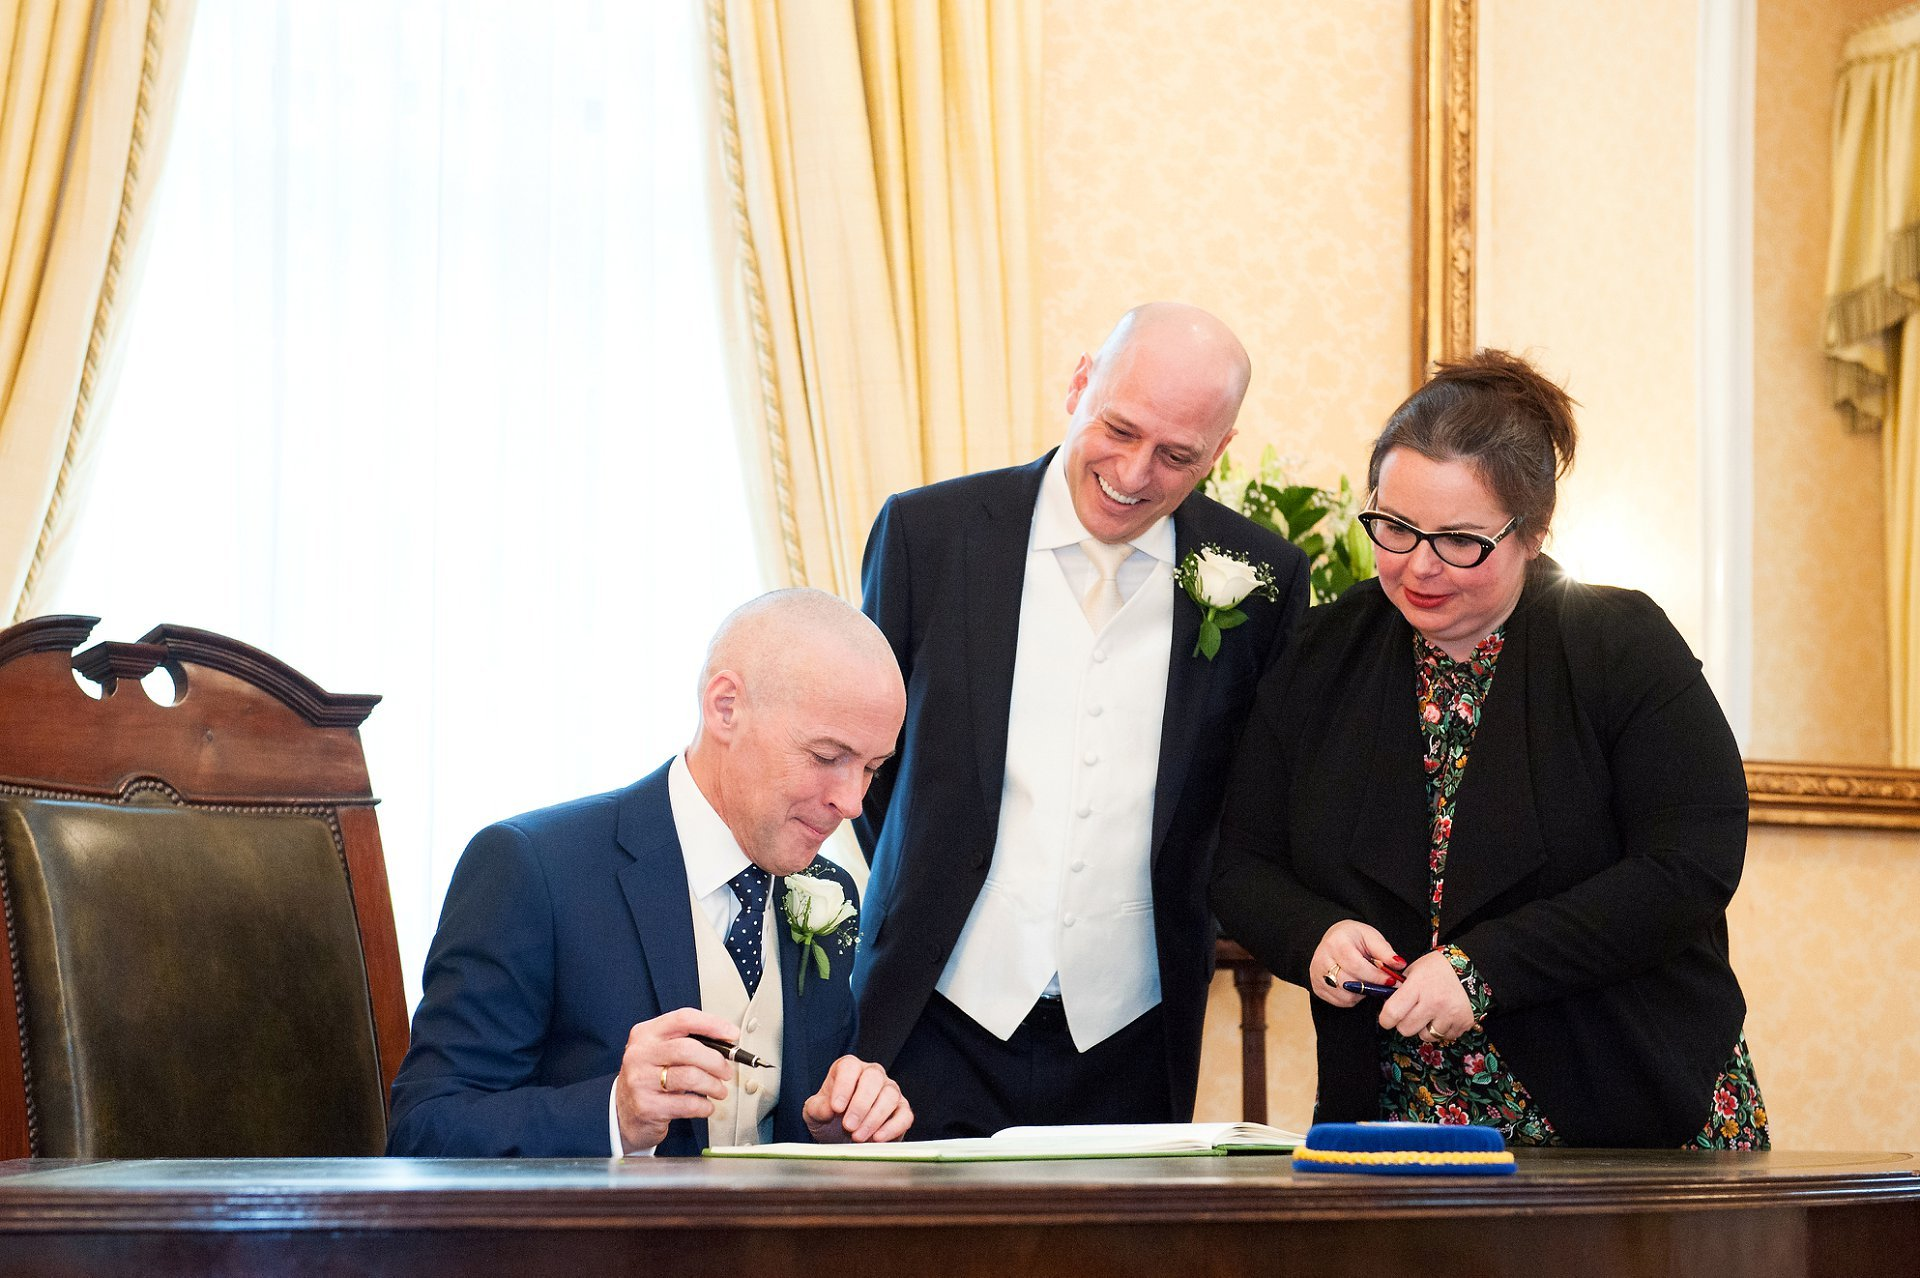 Signing the marriage register in the Brydon Room at Chelsea Old Town Hall